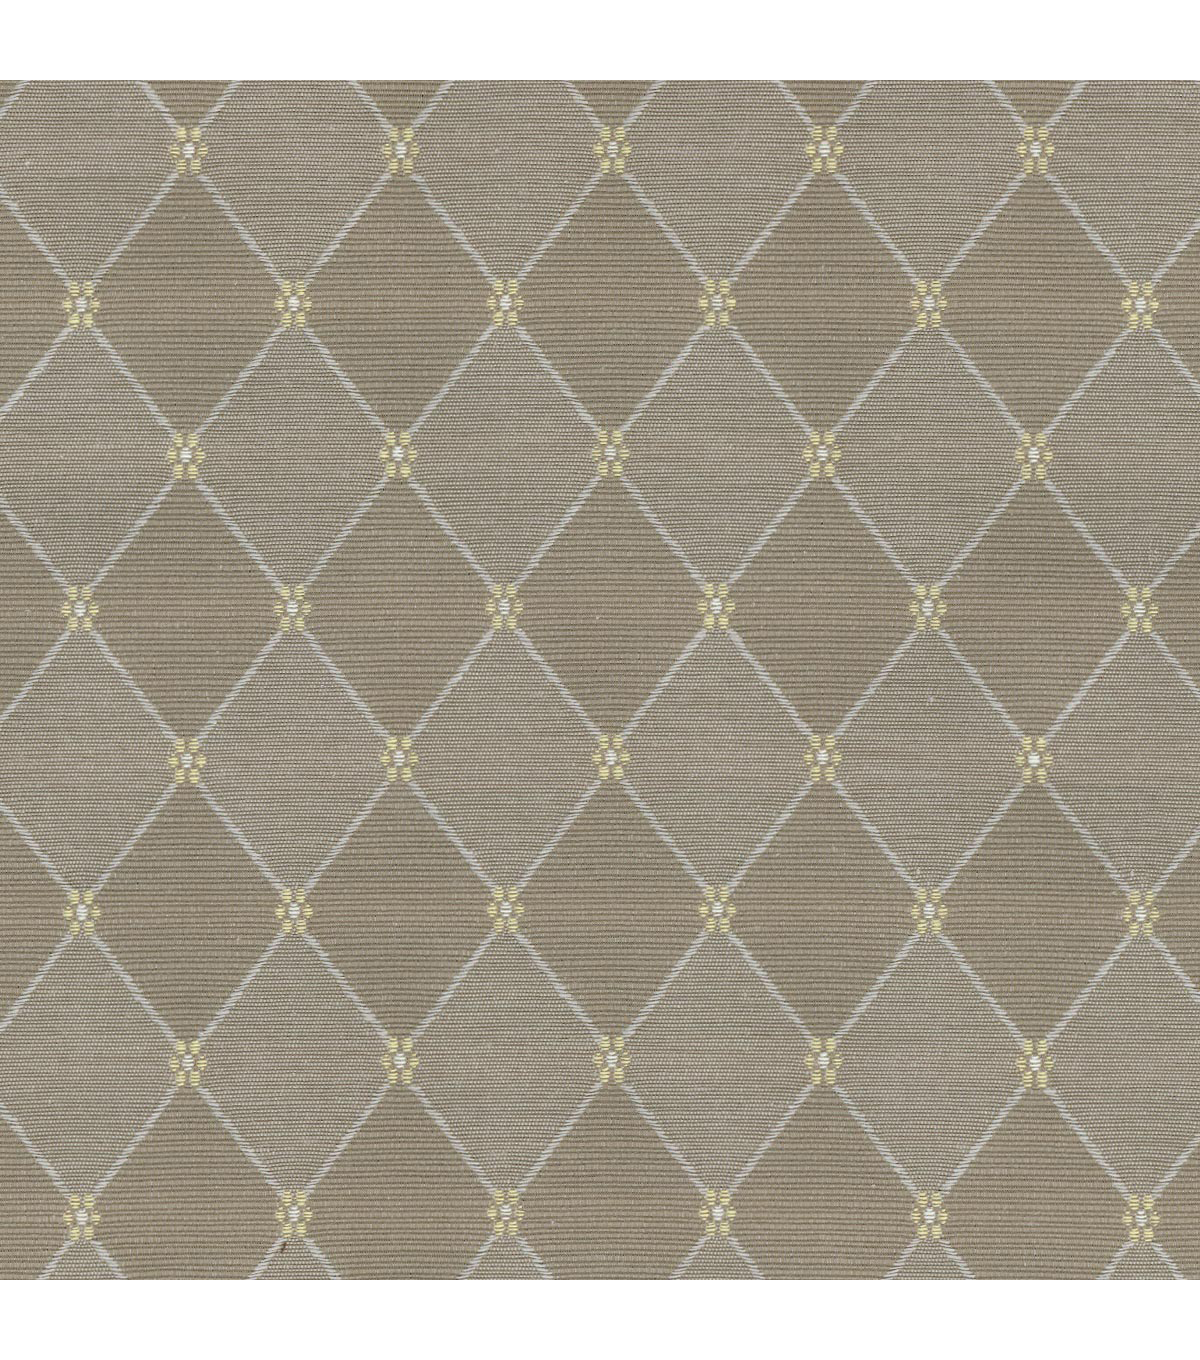 Upholstery Decor Fabric- Better Homes & Gardens Weston Charcoal